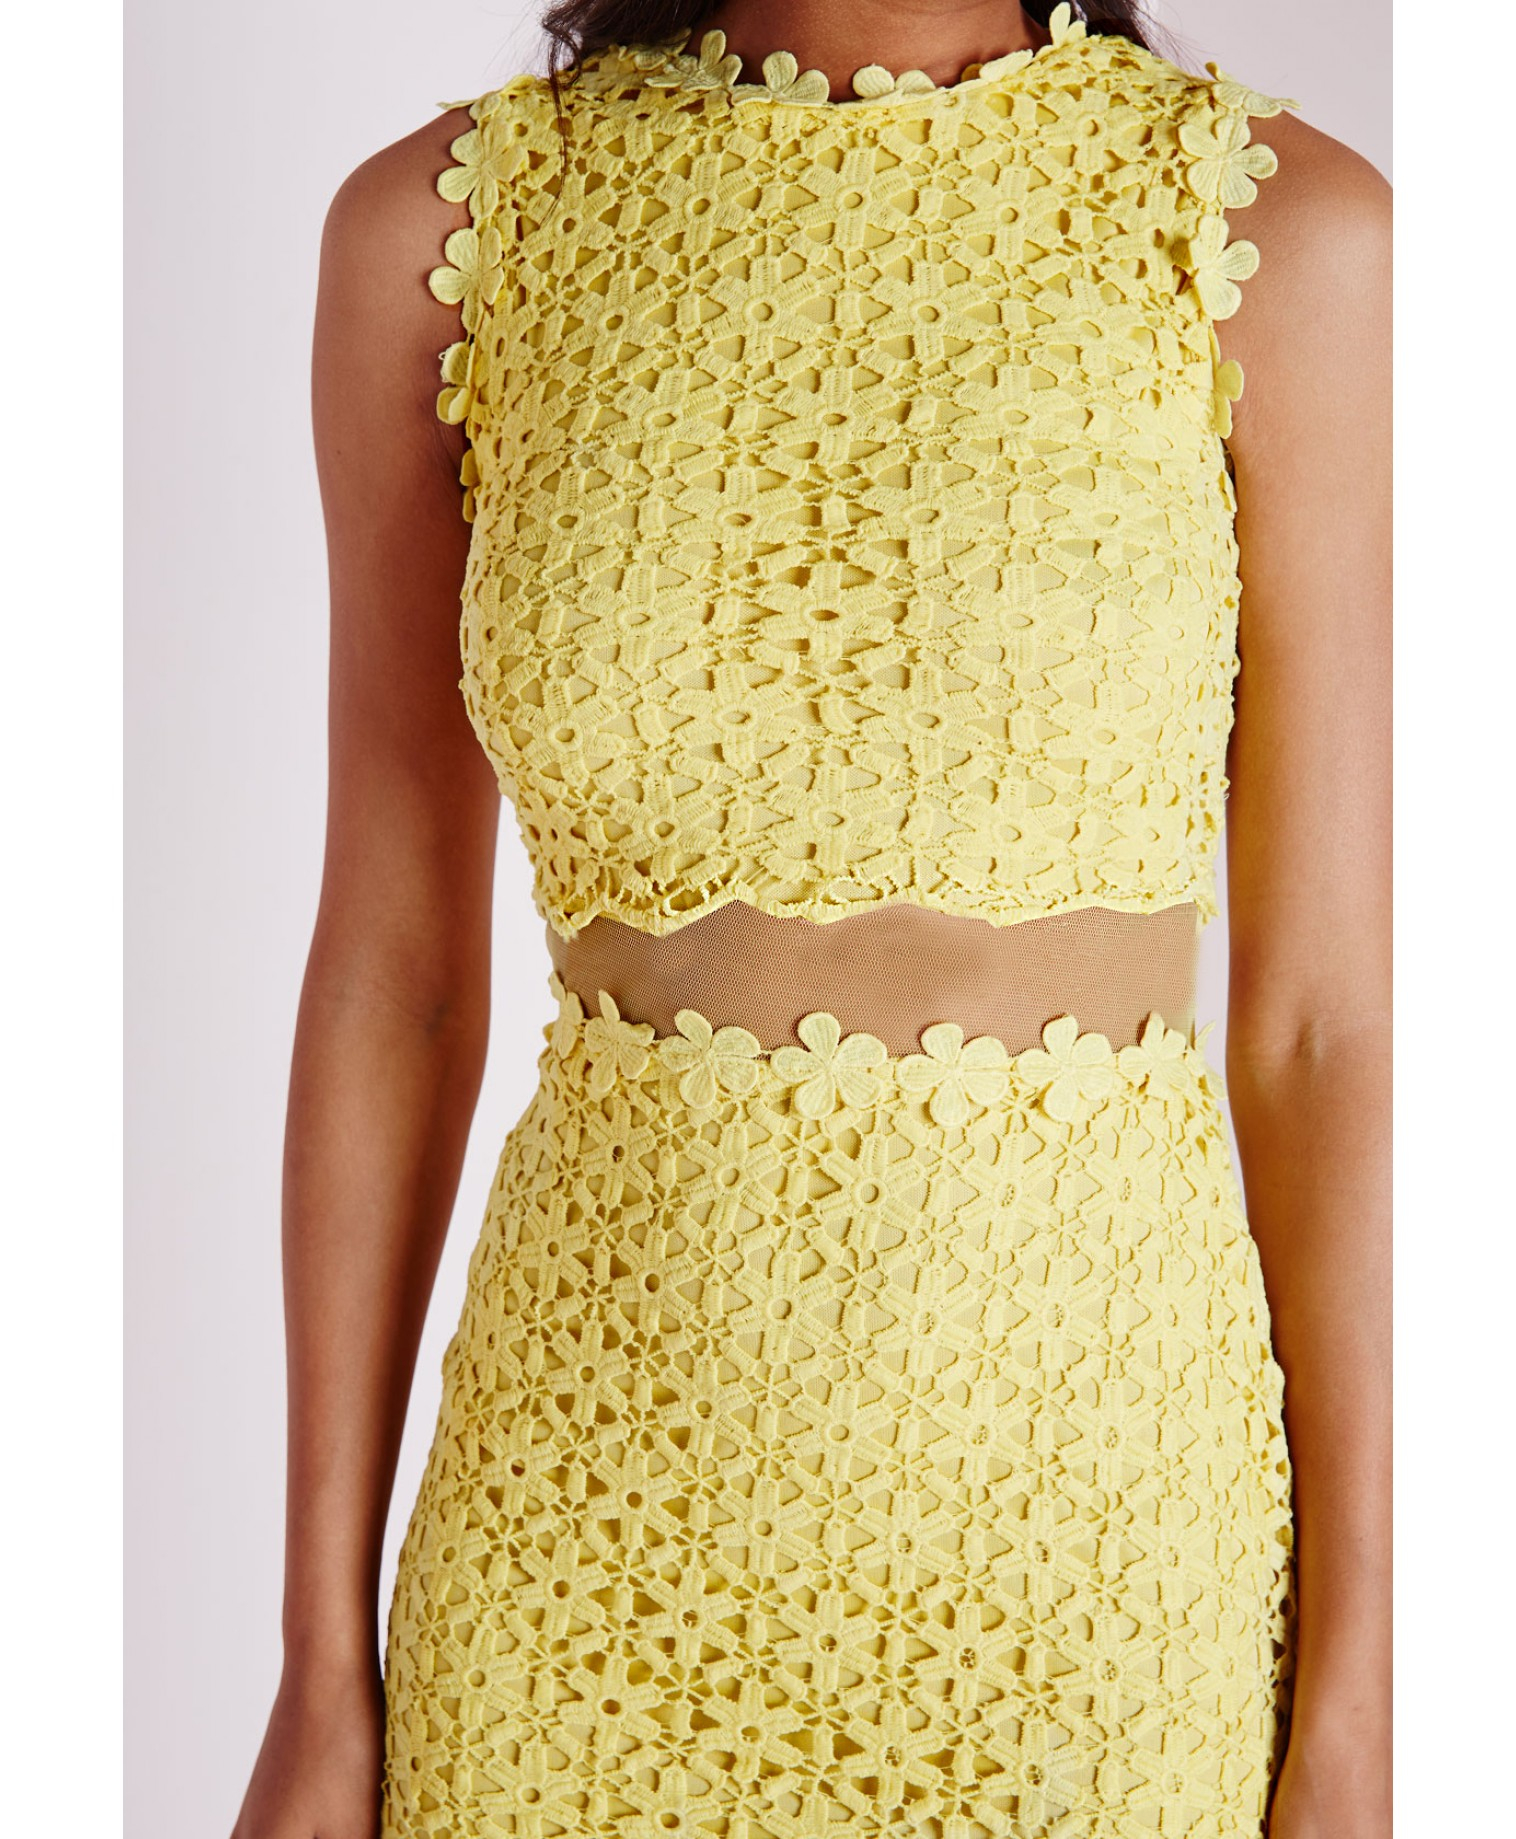 c88a6a346 Lyst - Missguided Mesh Waist Daisy Lace Dress Yellow in Yellow